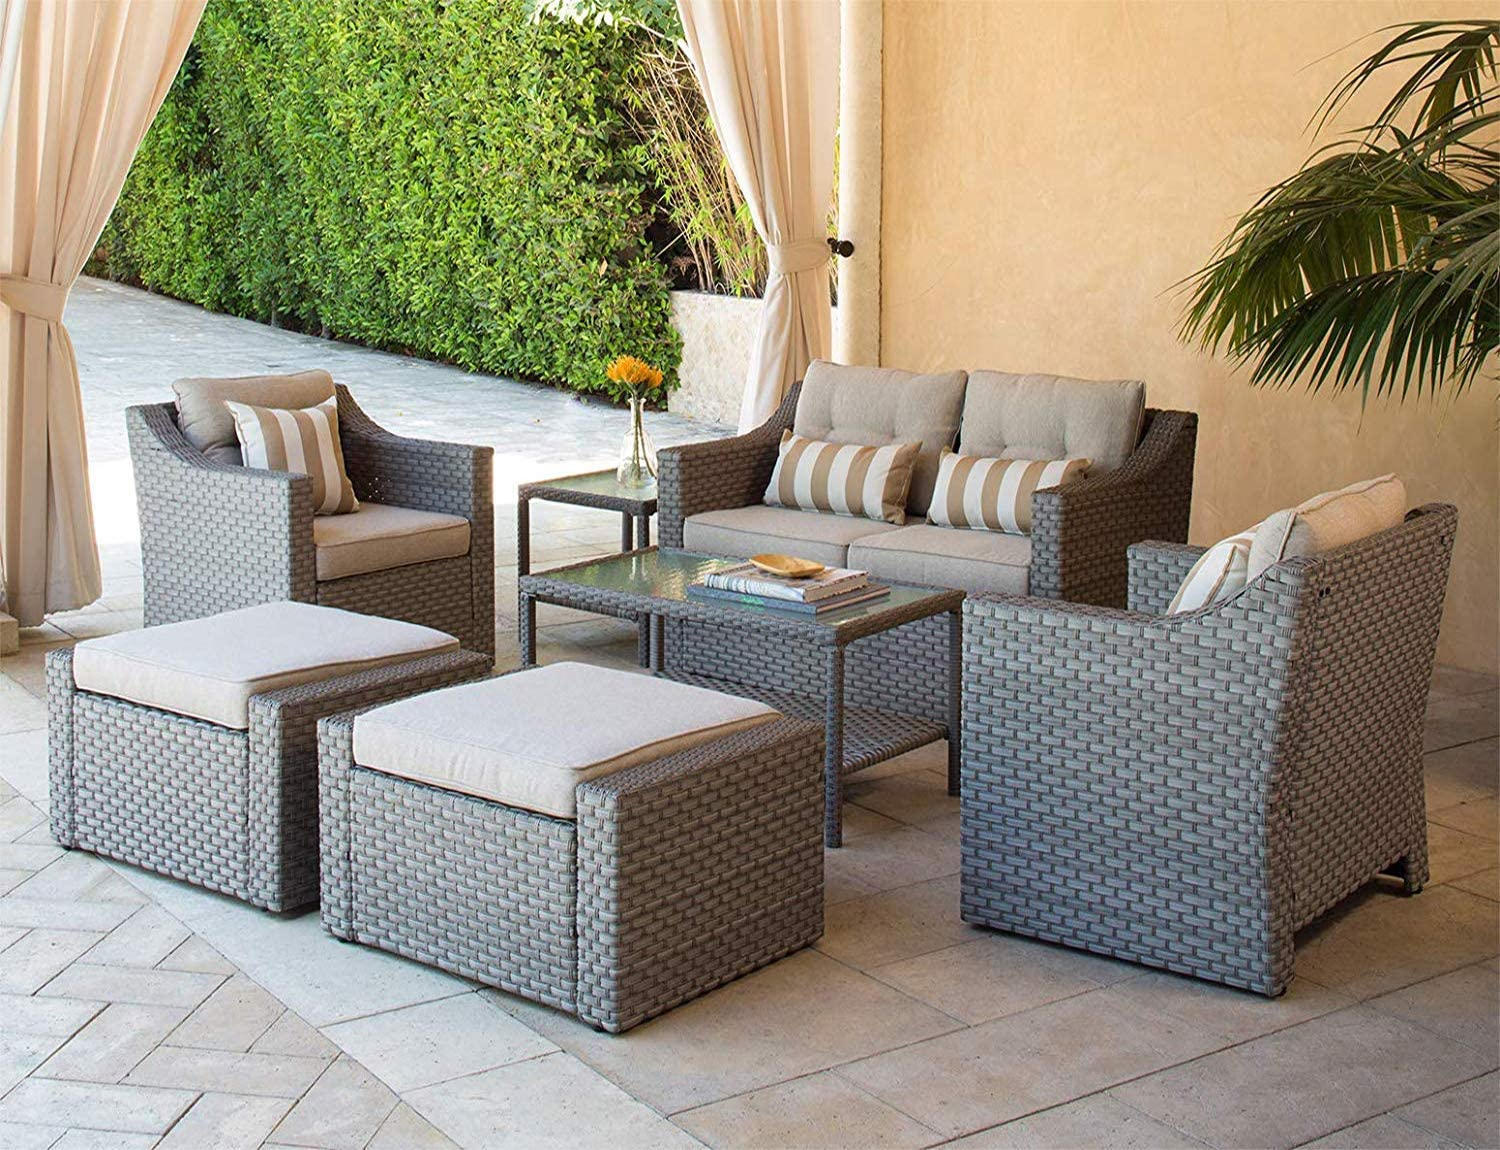 SOLAURA Outdoor Furniture Set 7-Piece Wicker Furniture Lounge Chairs with Ottoman Loveseat Gray Wicker Patio with Neutral Beige